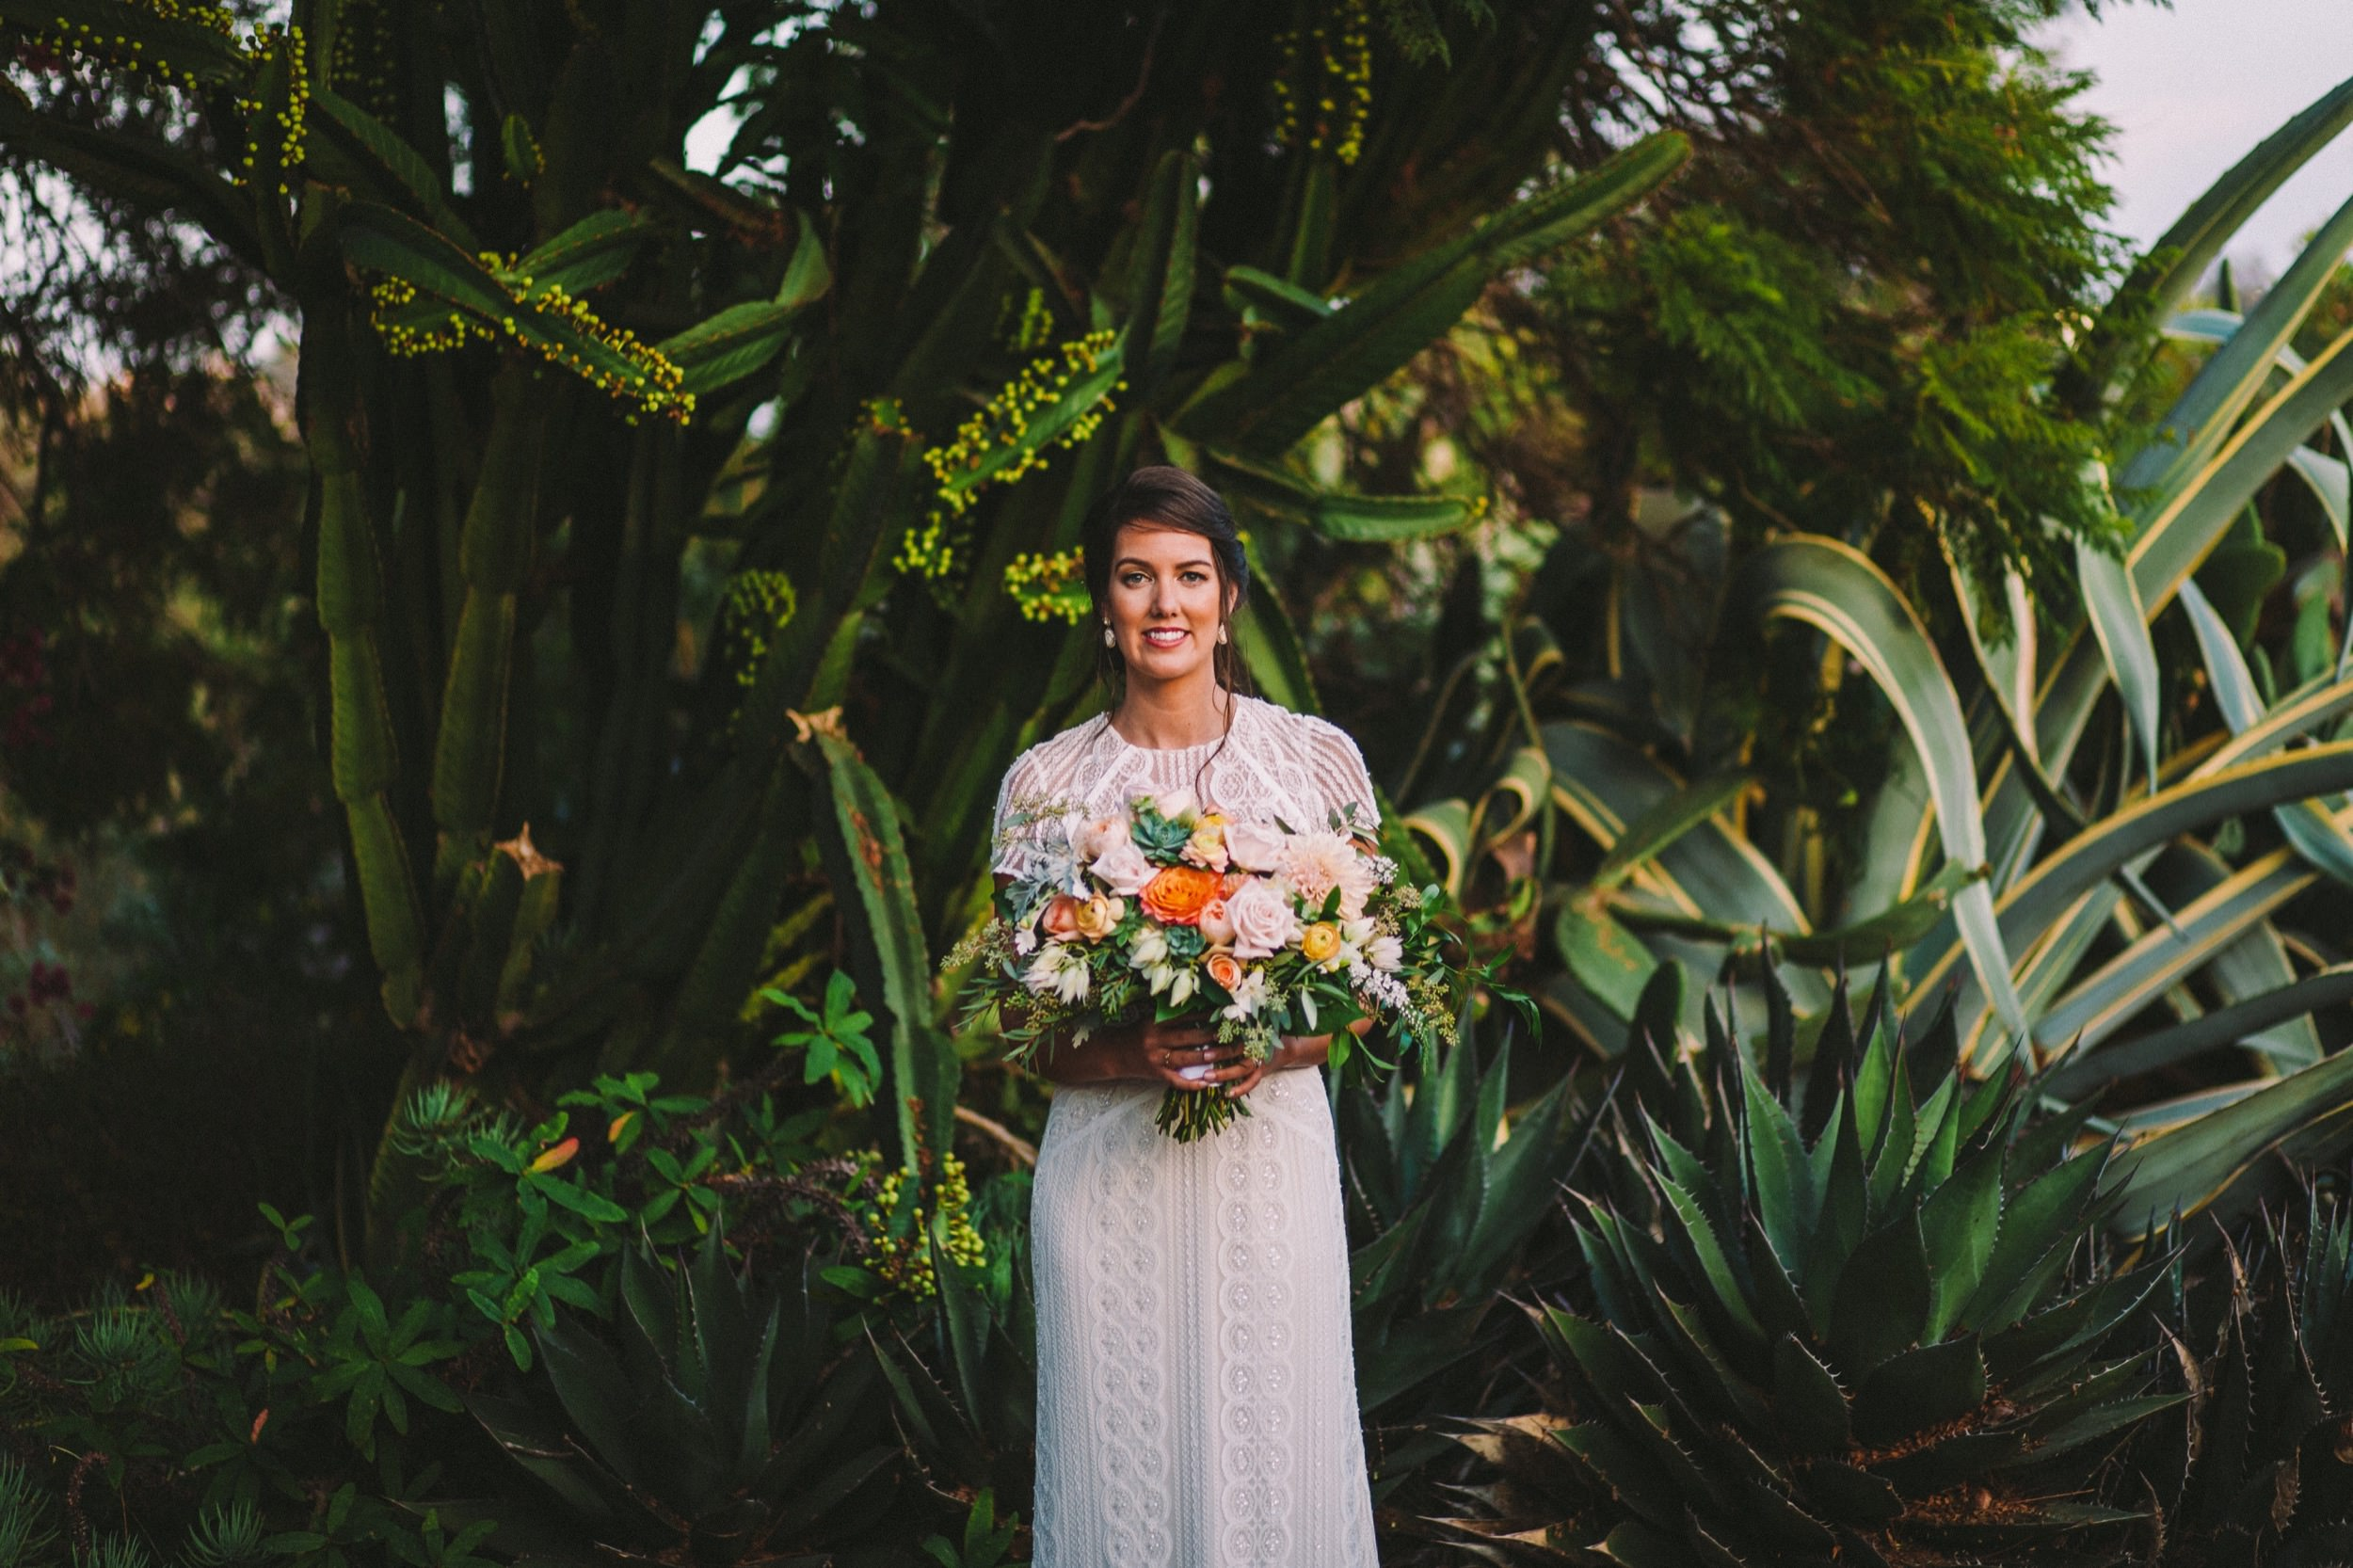 Bride Holding a Bouquet by Flower Frenzy in Encinitas